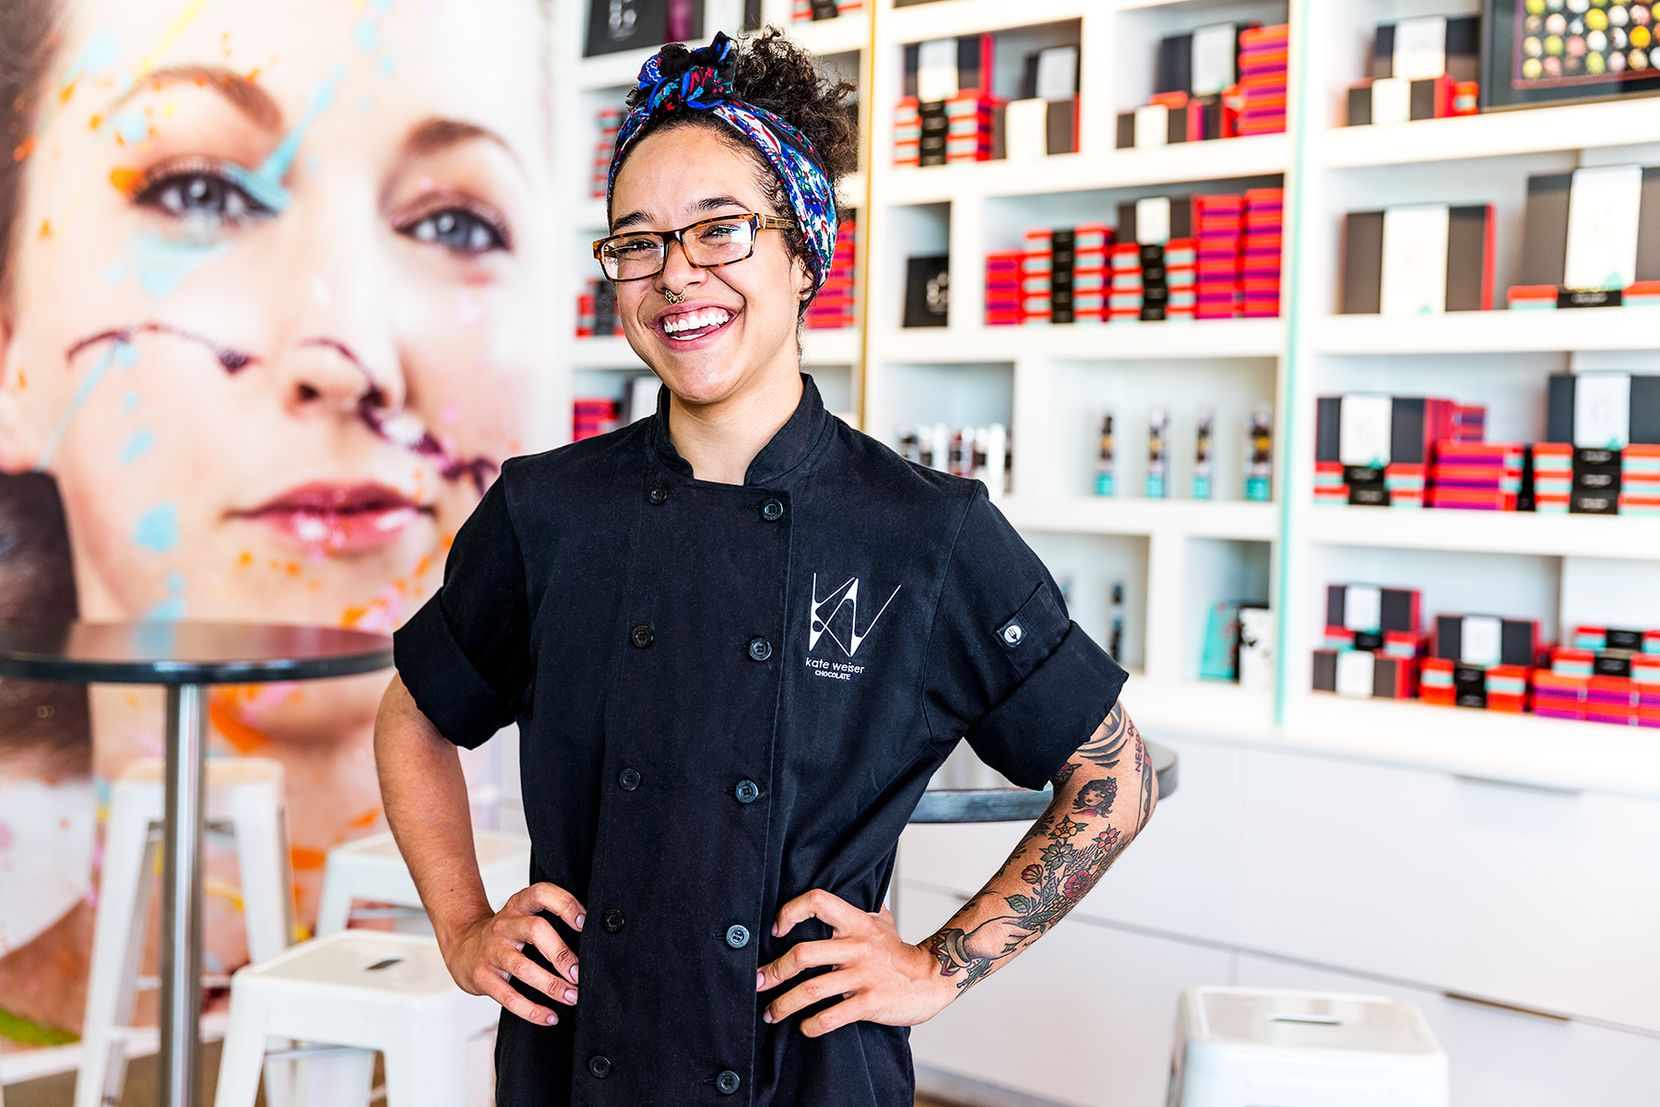 Jessica Stampley, 23, sous chef at Kate Weiser Chocolate